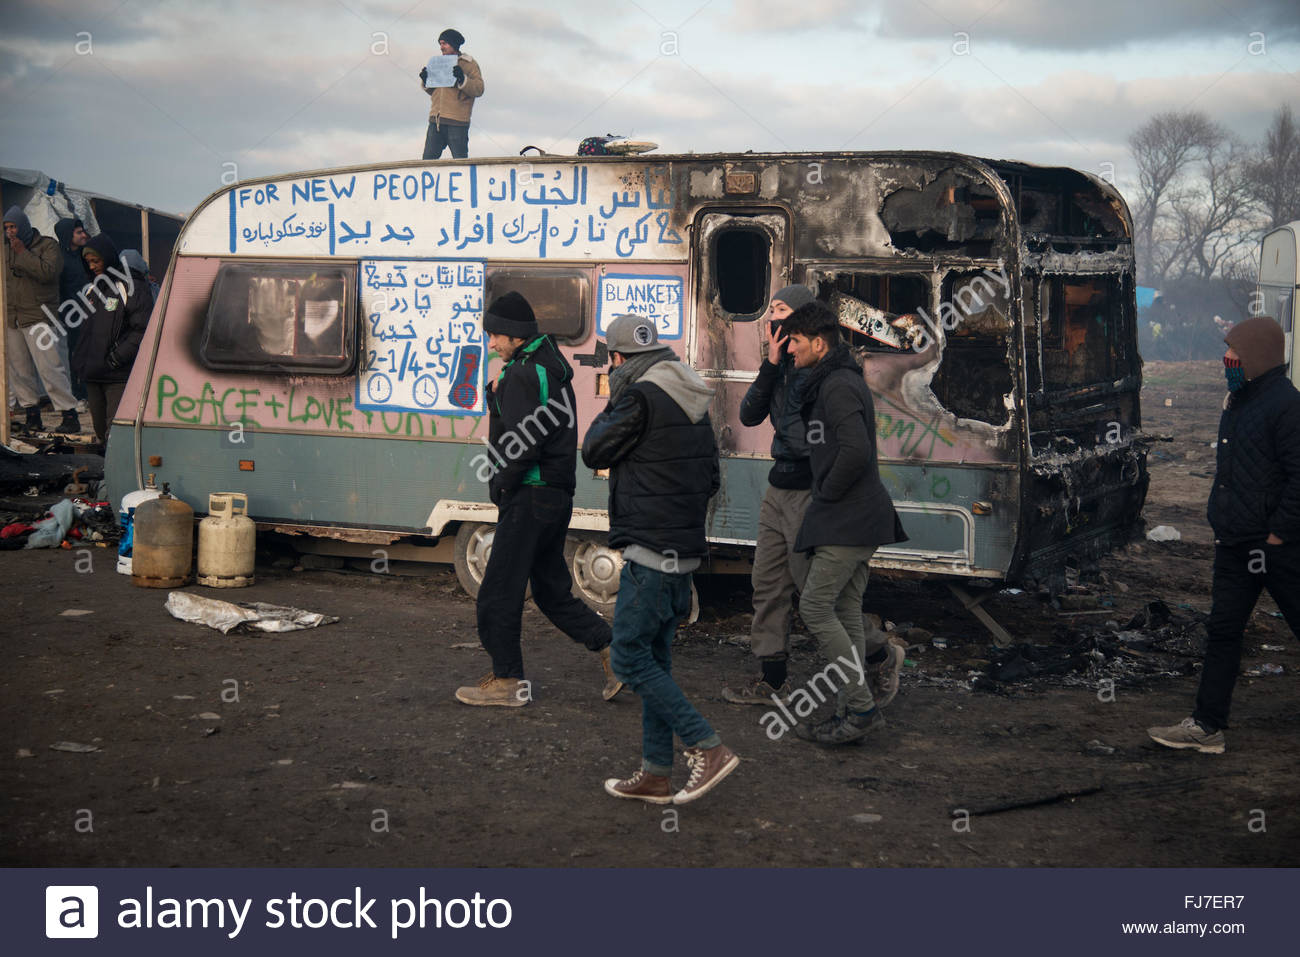 Calais, France. February 29th, 2016. Just-evicted refugees walk past a burned-out home as authorities dismantle - Stock Image